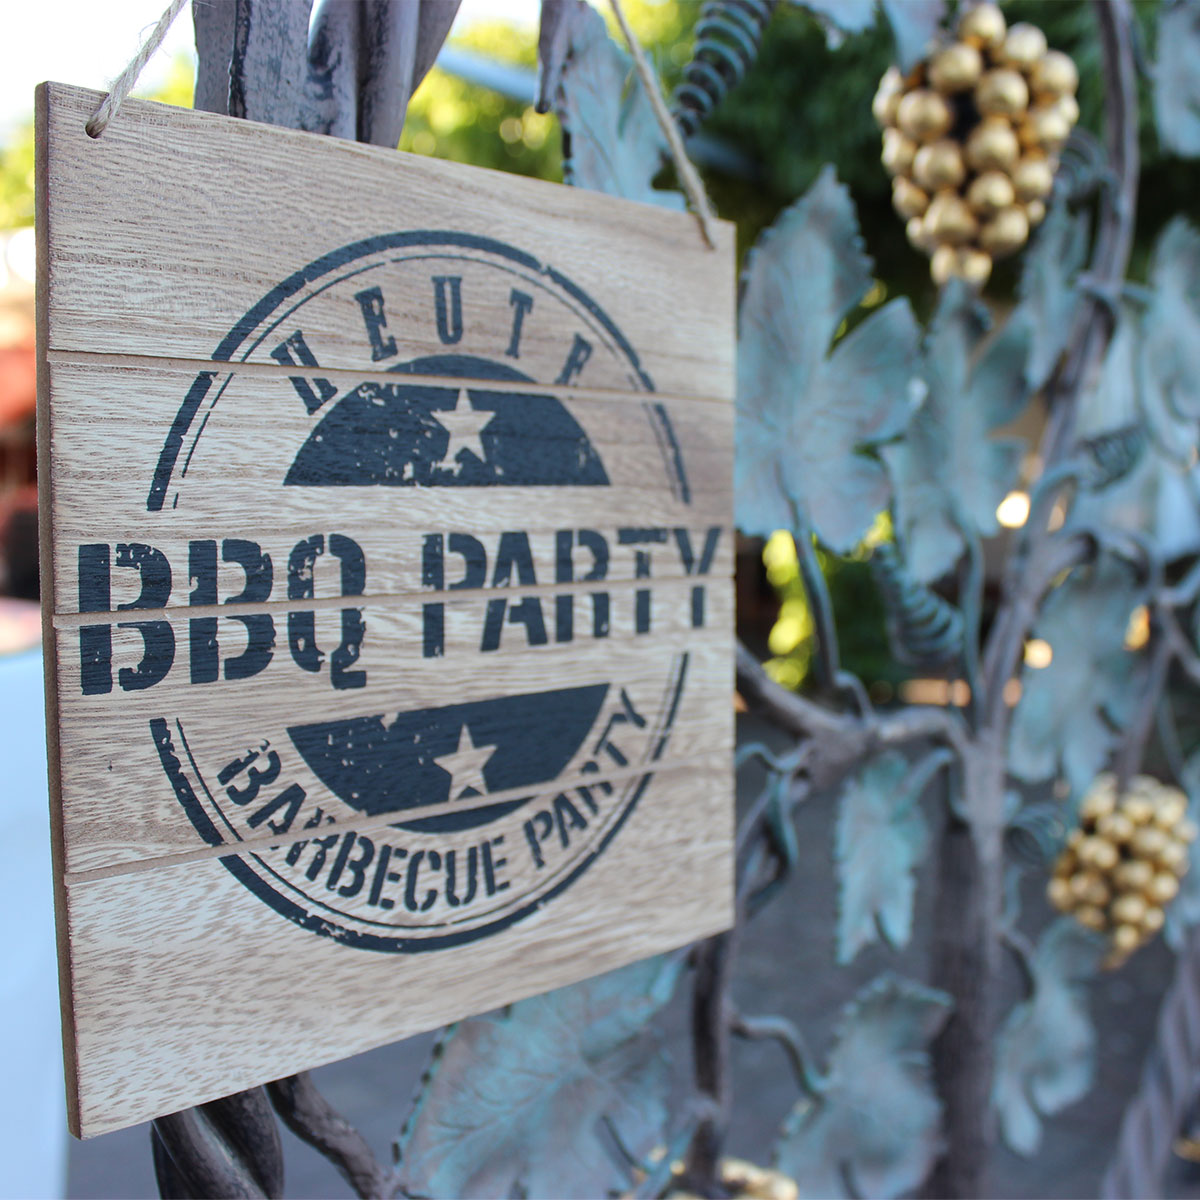 Weingut Hauer Events - BBQ Party